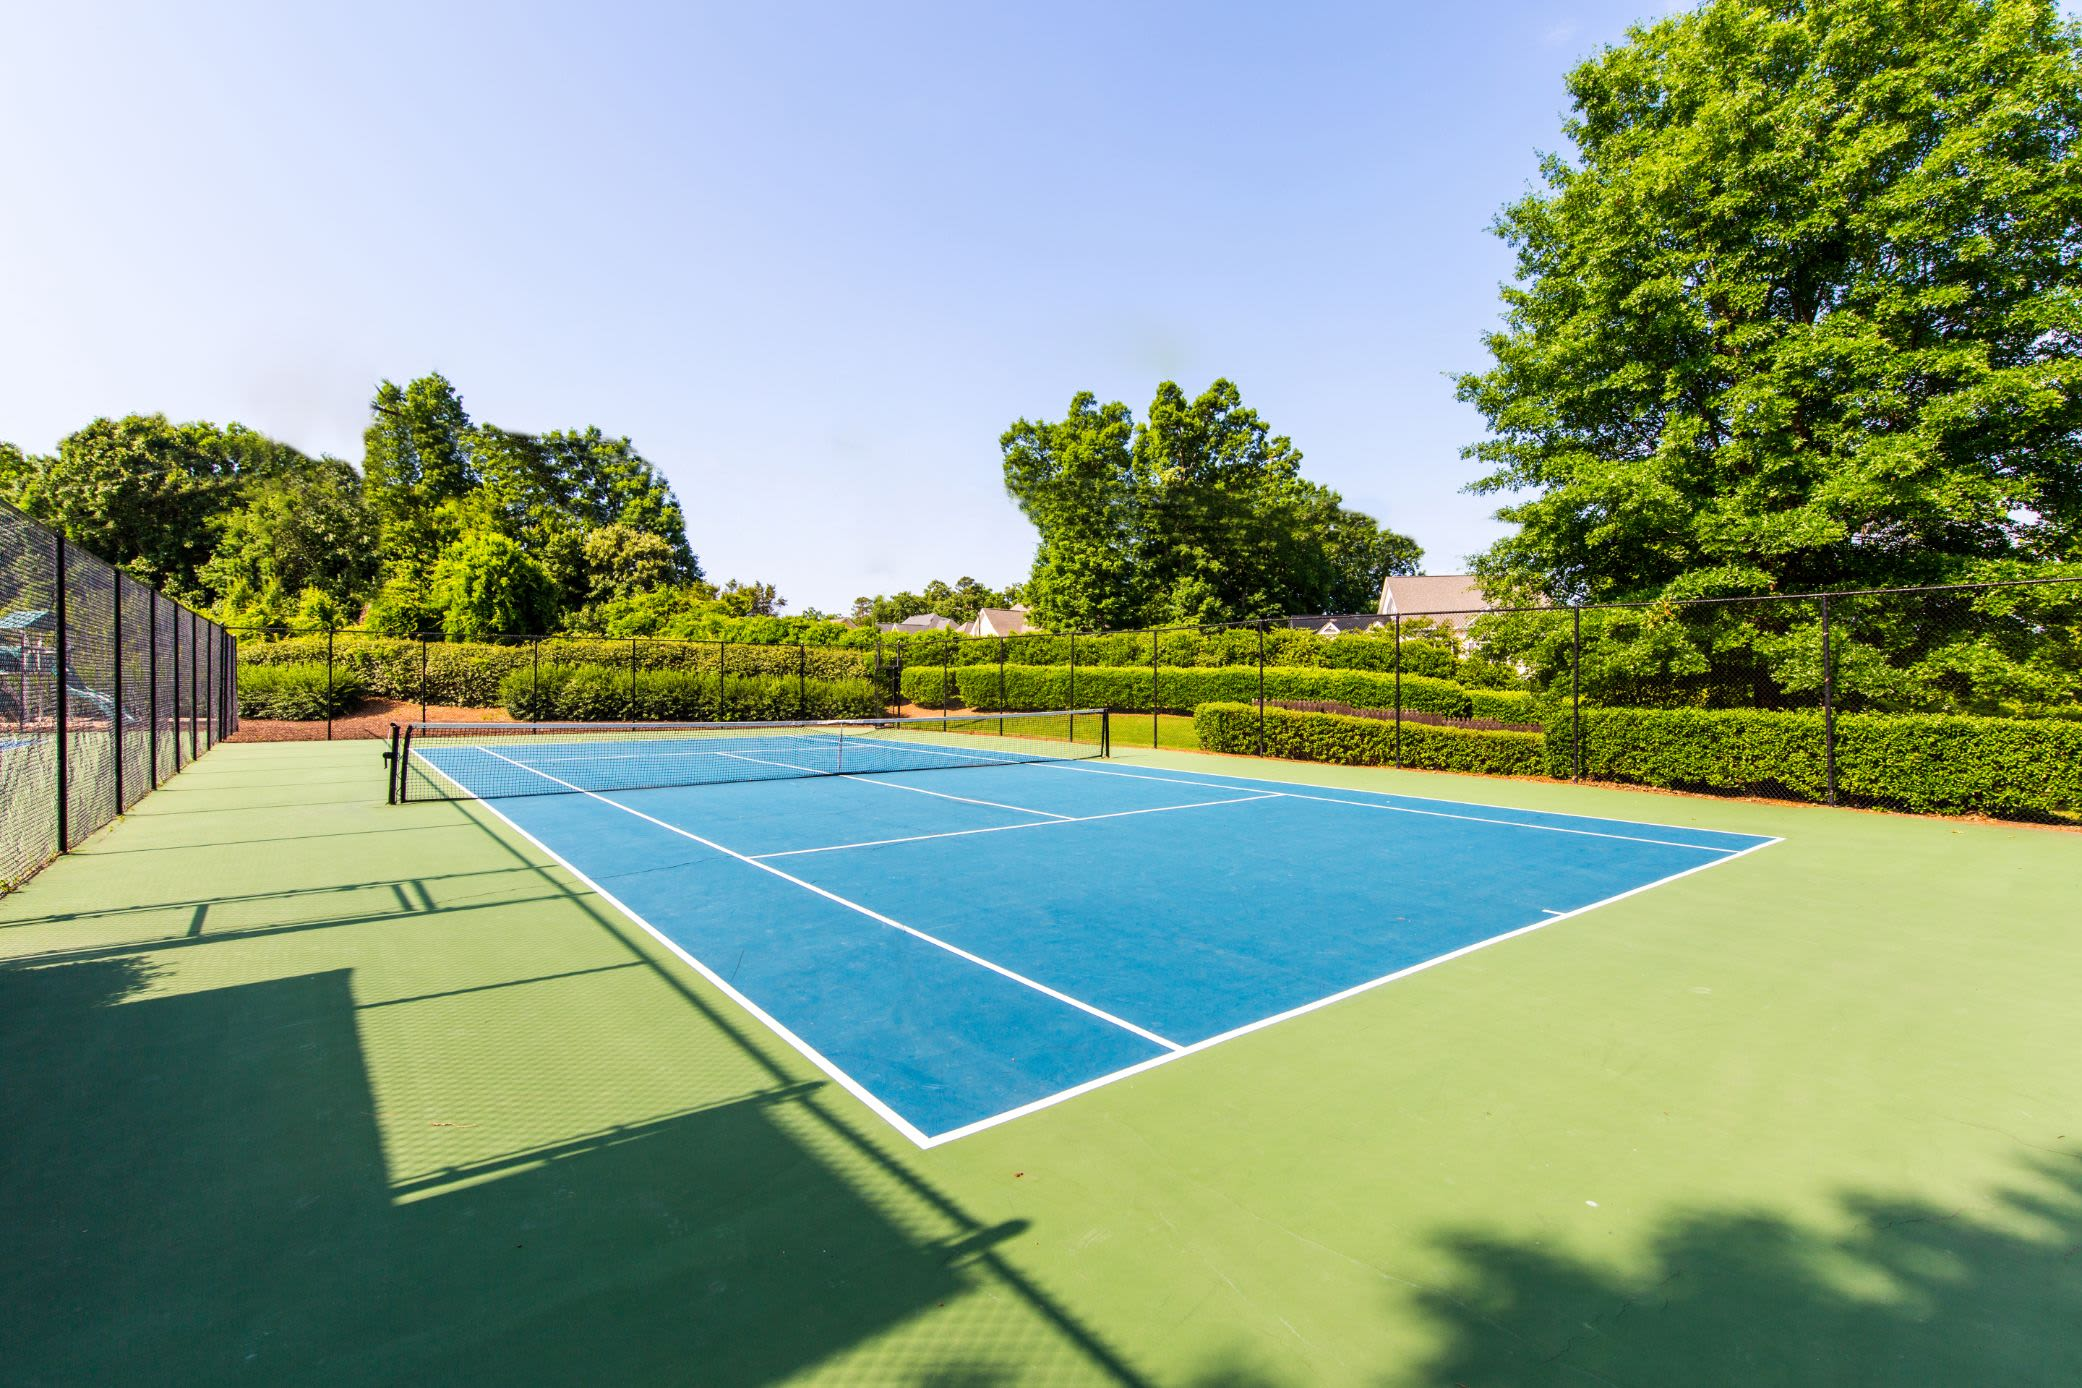 Outdoor tennis court at Marquis on Edwards Mill in Raleigh, North Carolina